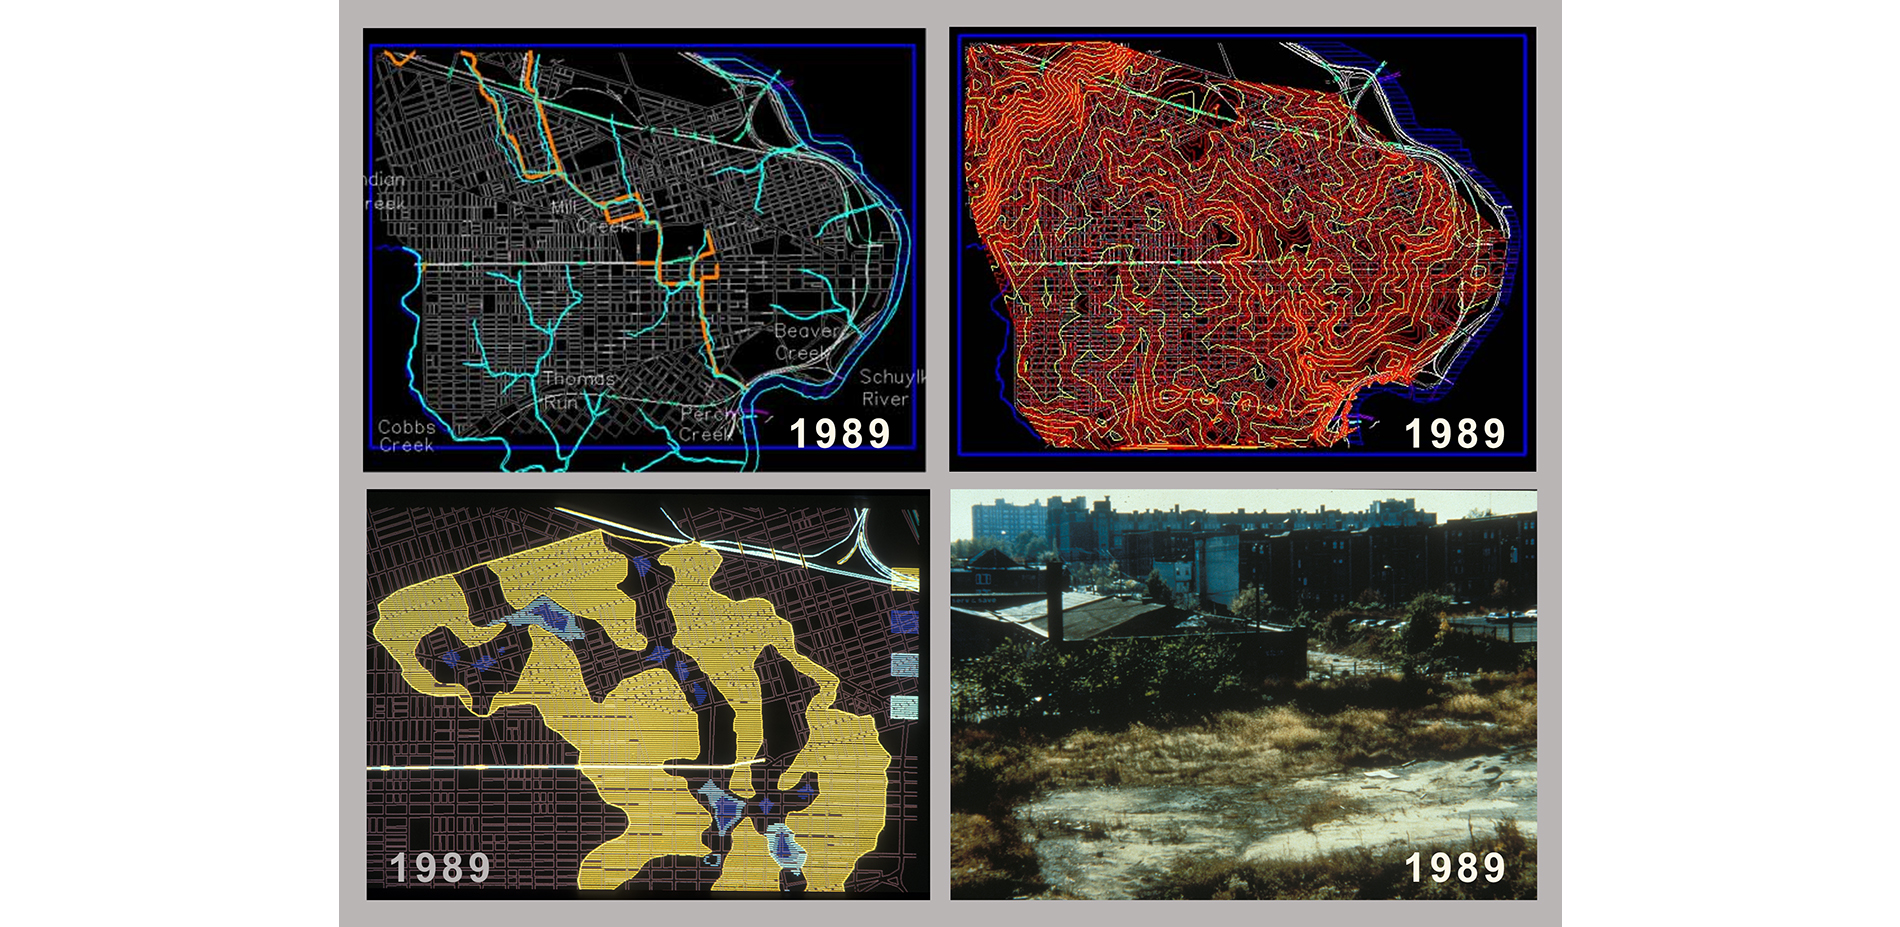 Mapping the Buried Floodplain (1989)